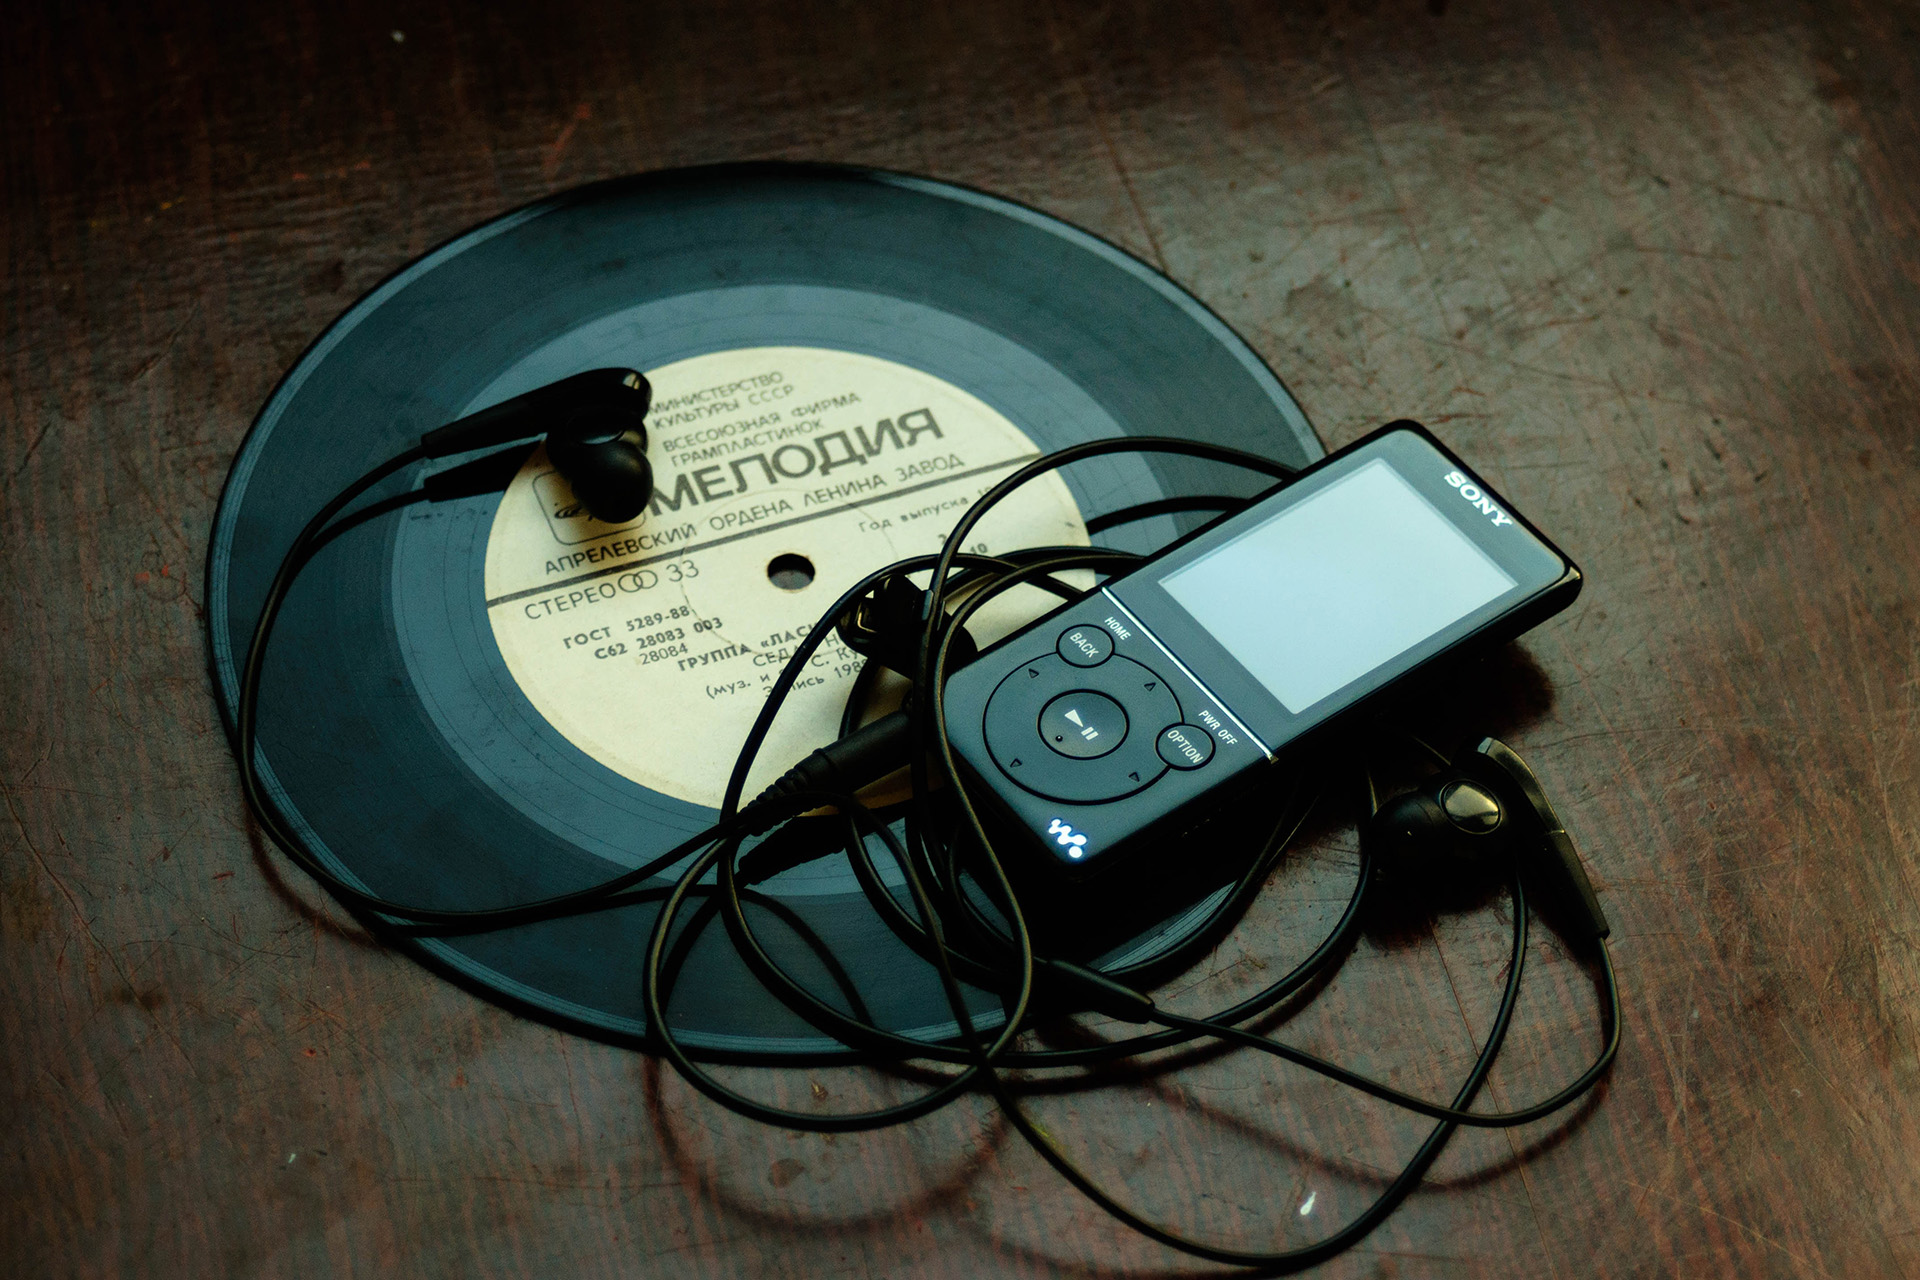 Sony walkman on vinyl record